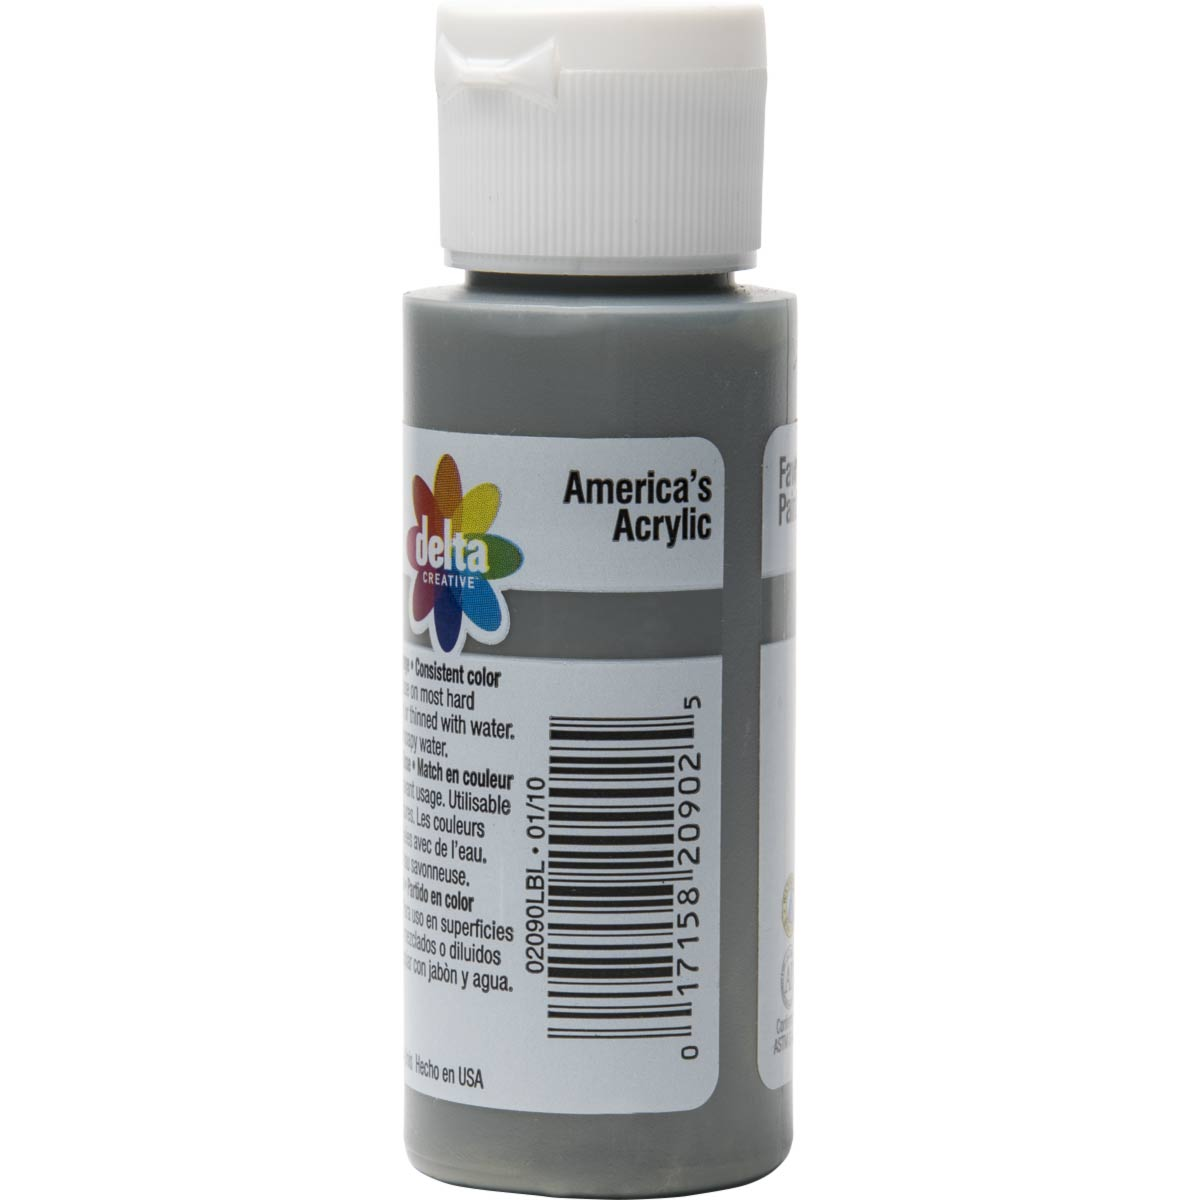 Delta Ceramcoat ® Acrylic Paint - Hippo Grey, 2 oz. - 020900202W